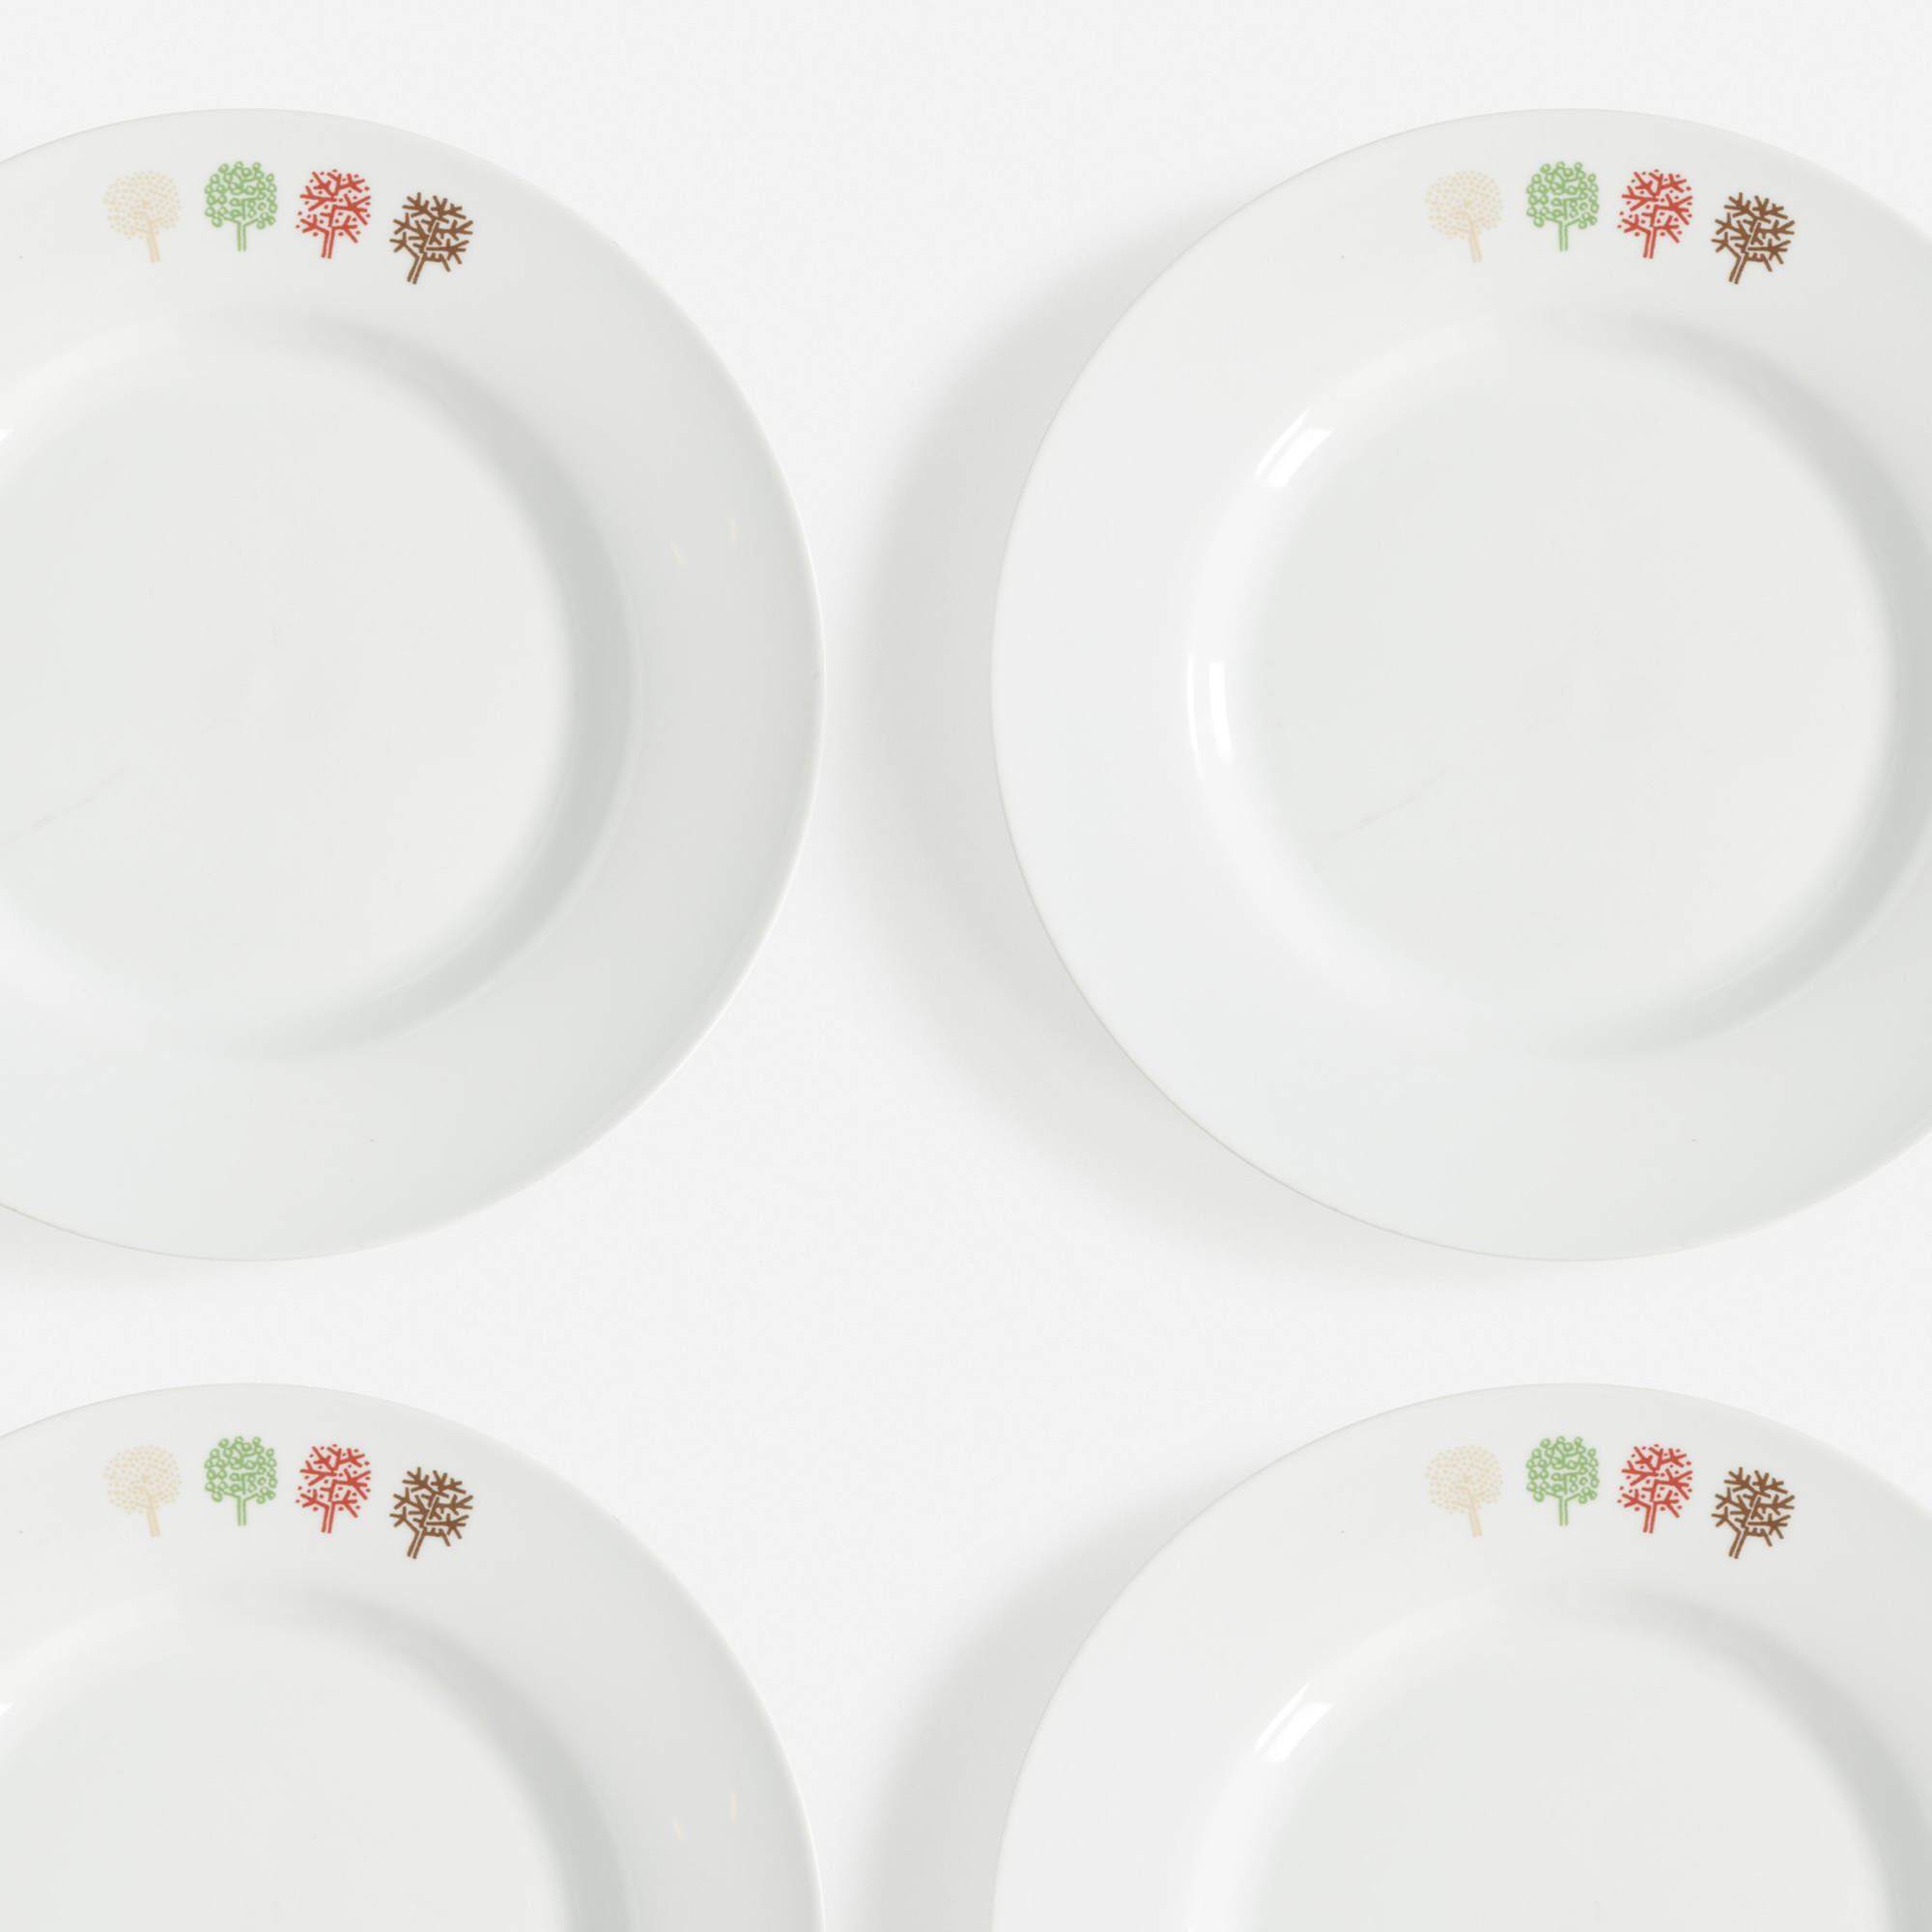 600:  / Four Seasons plates, set of twelve (1 of 1)